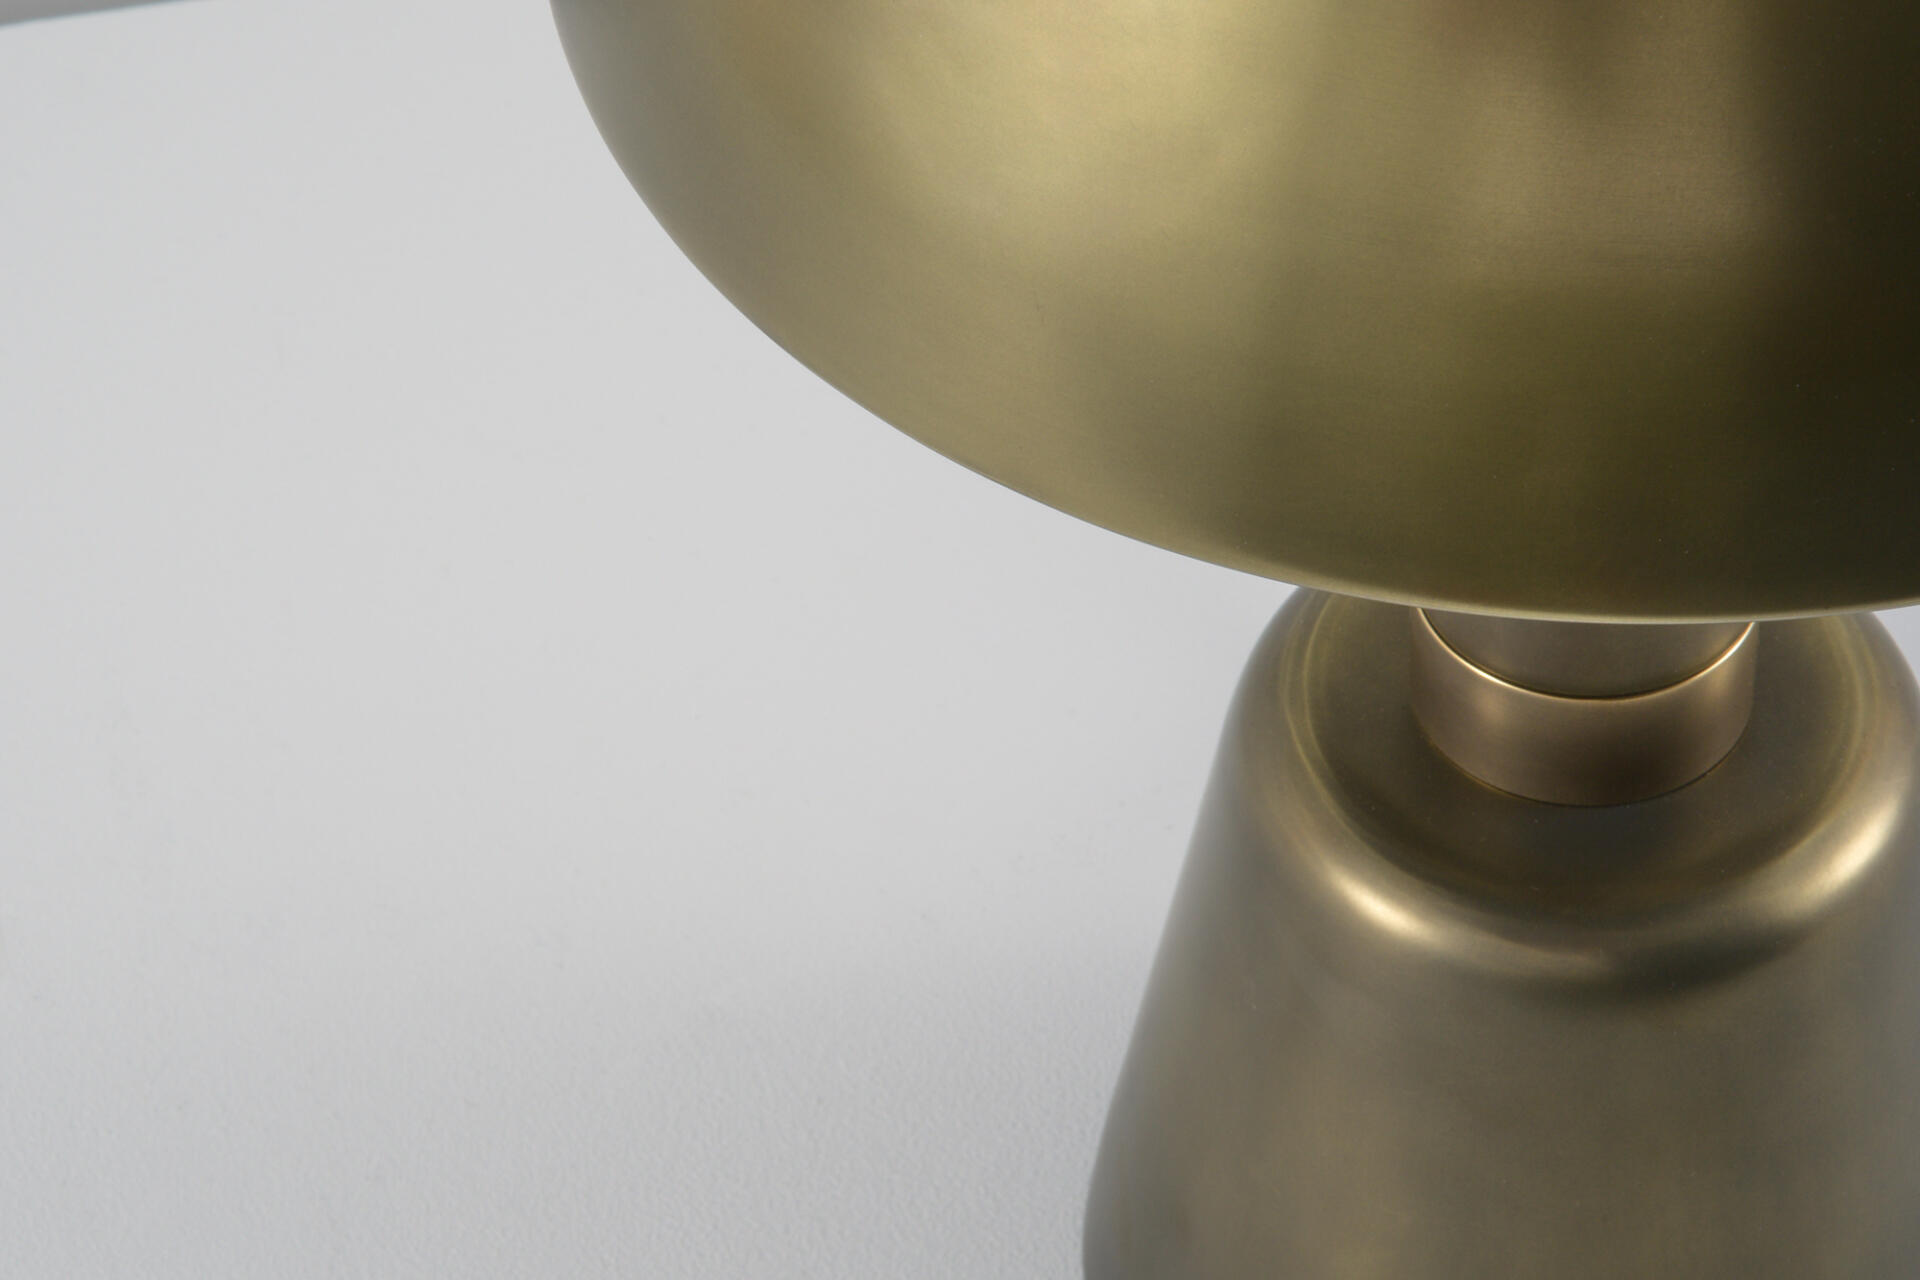 Cep table lamp made at the Collier Webb foundry and available at their London showroom